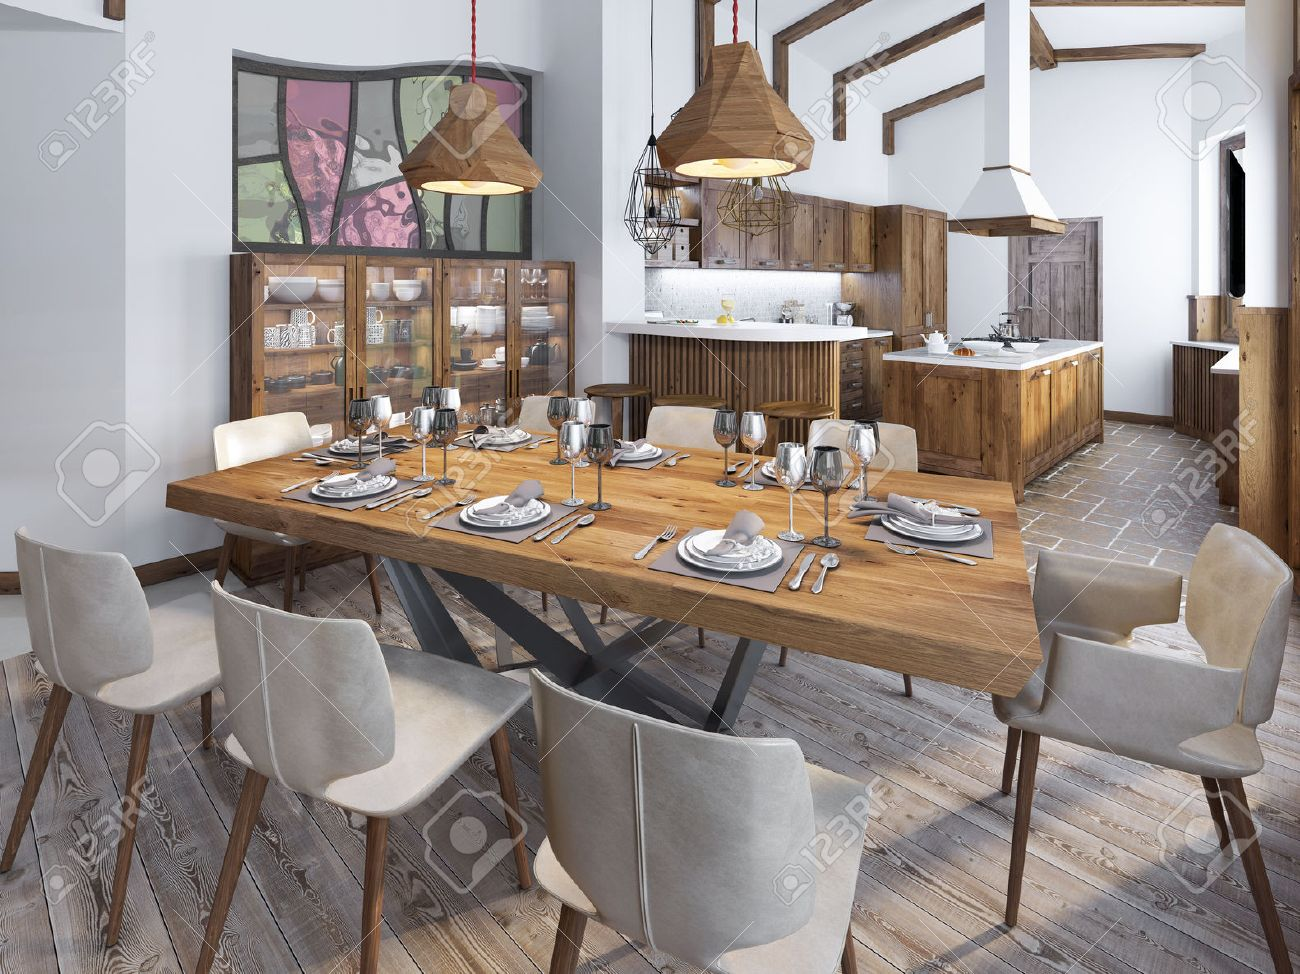 Modern Kitchen And Dining Room In The Loft. Kitchen Furniture ...